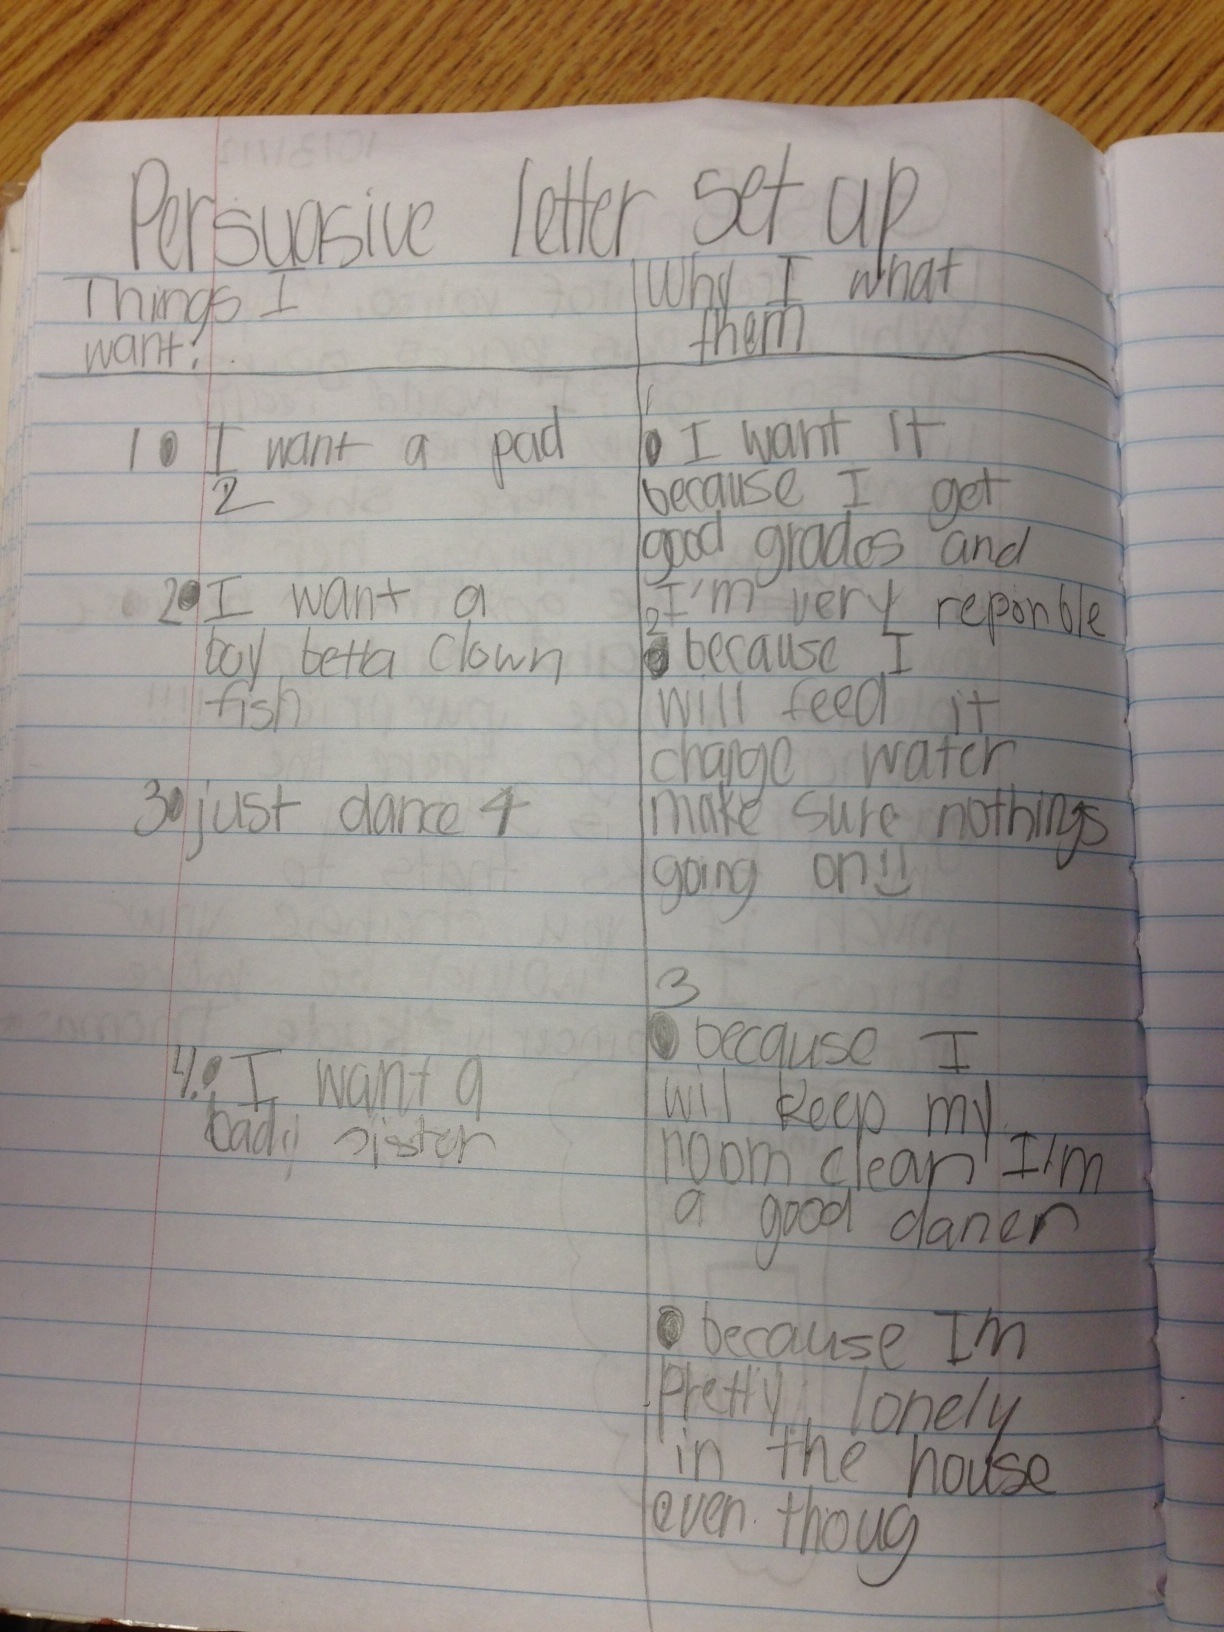 "persuasive writing ae"" three strategies for generating ideas  persuasive list persuasive list"